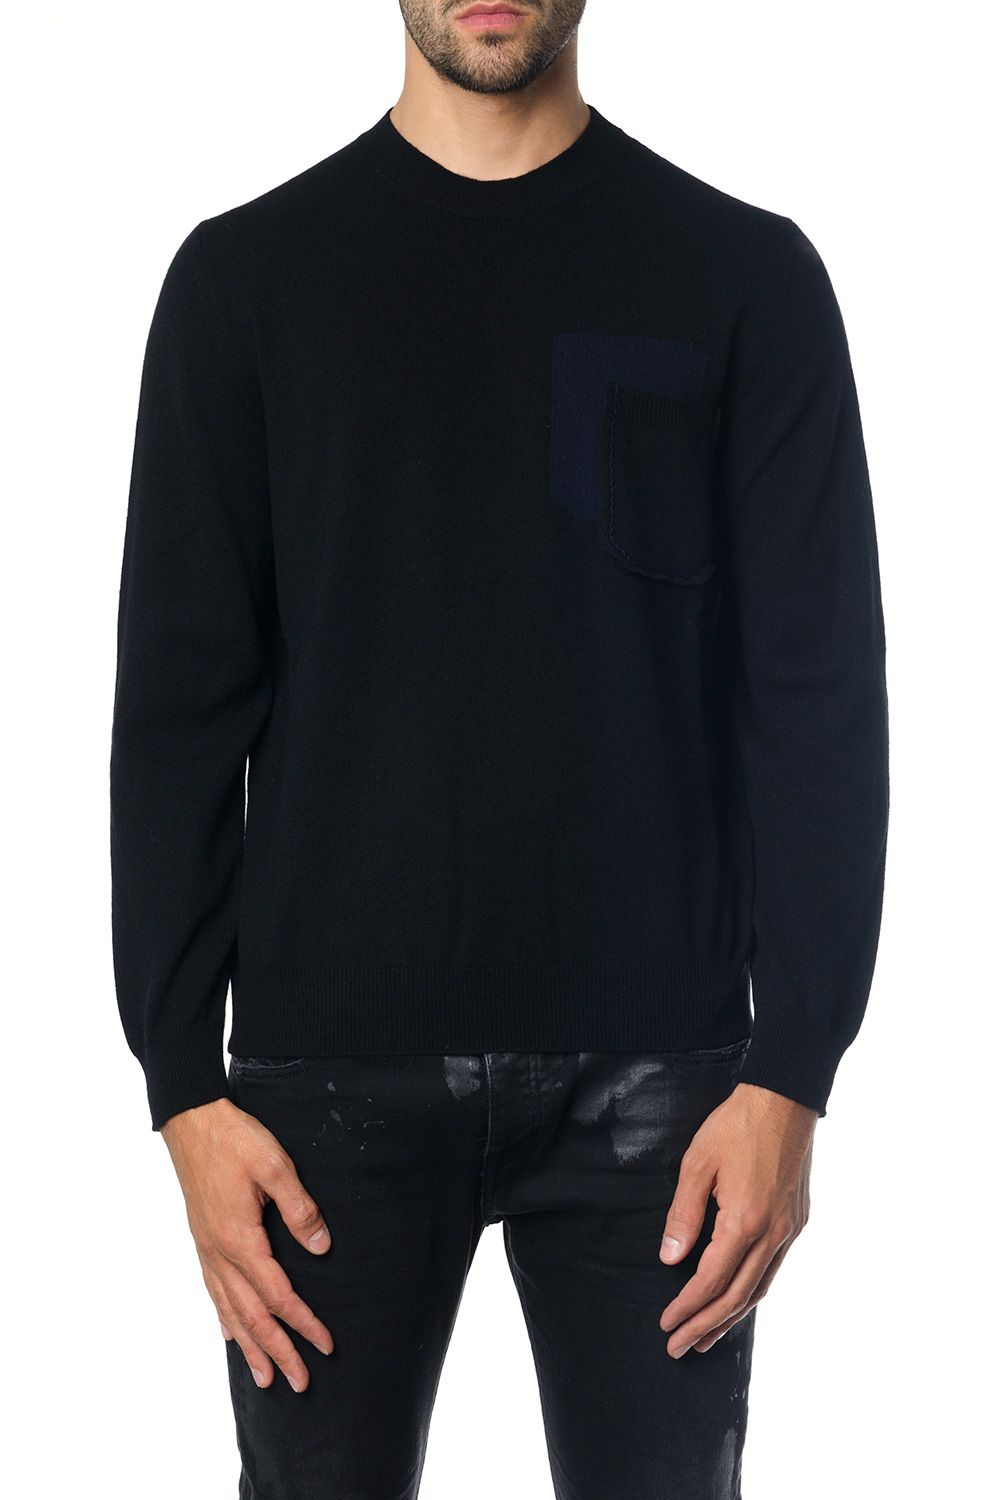 MARNI BLACK RIBBED KNITWEAR IN CACHEMIRE